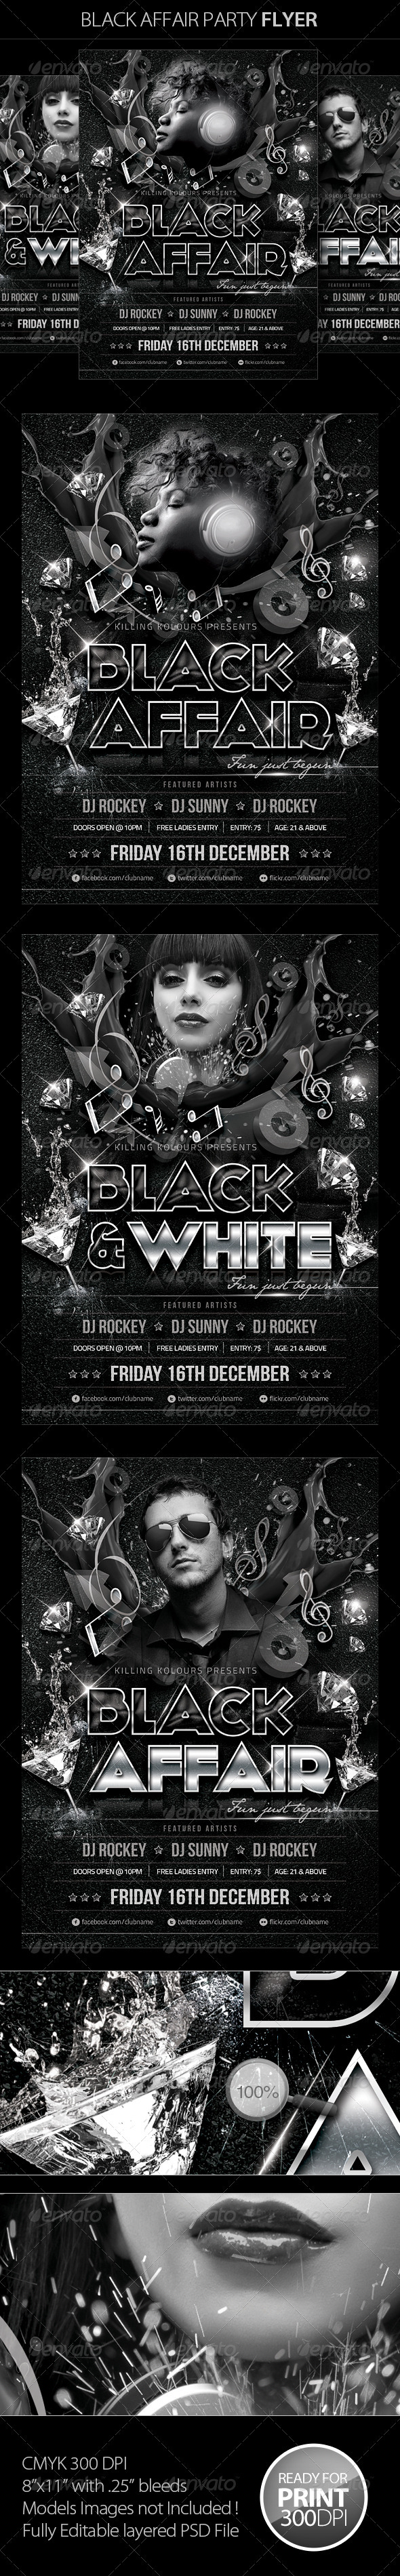 Black Affair Party Flyer - Clubs & Parties Events